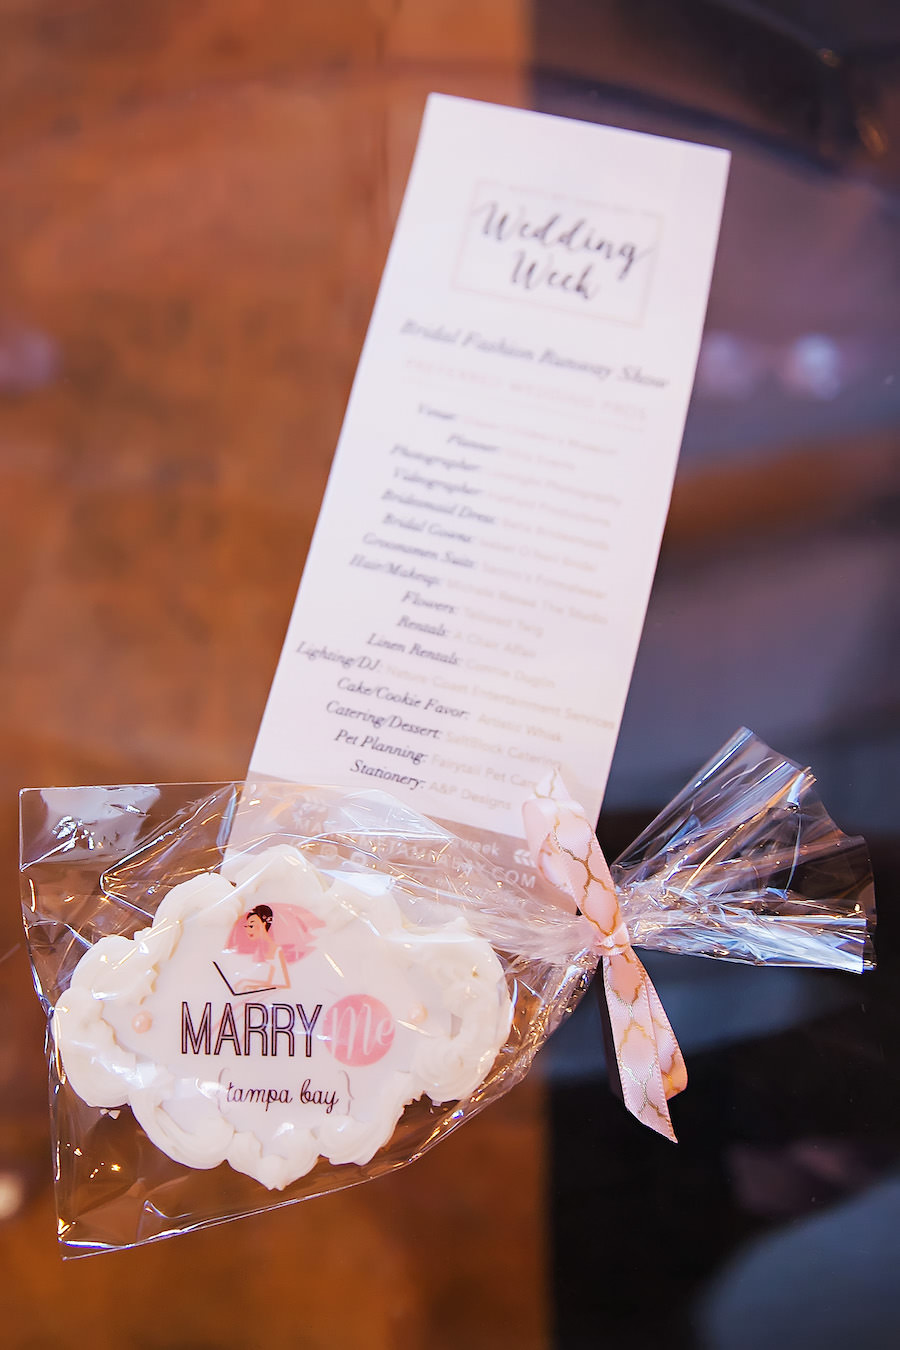 Monogramed Custom Printed Marry Me Tampa Bay Cookie Favor | Tampa Bay Wedding Cake Baker The Artistic Whisk | Marry Me Tampa Bay Wedding Week Bridal Fashion Show